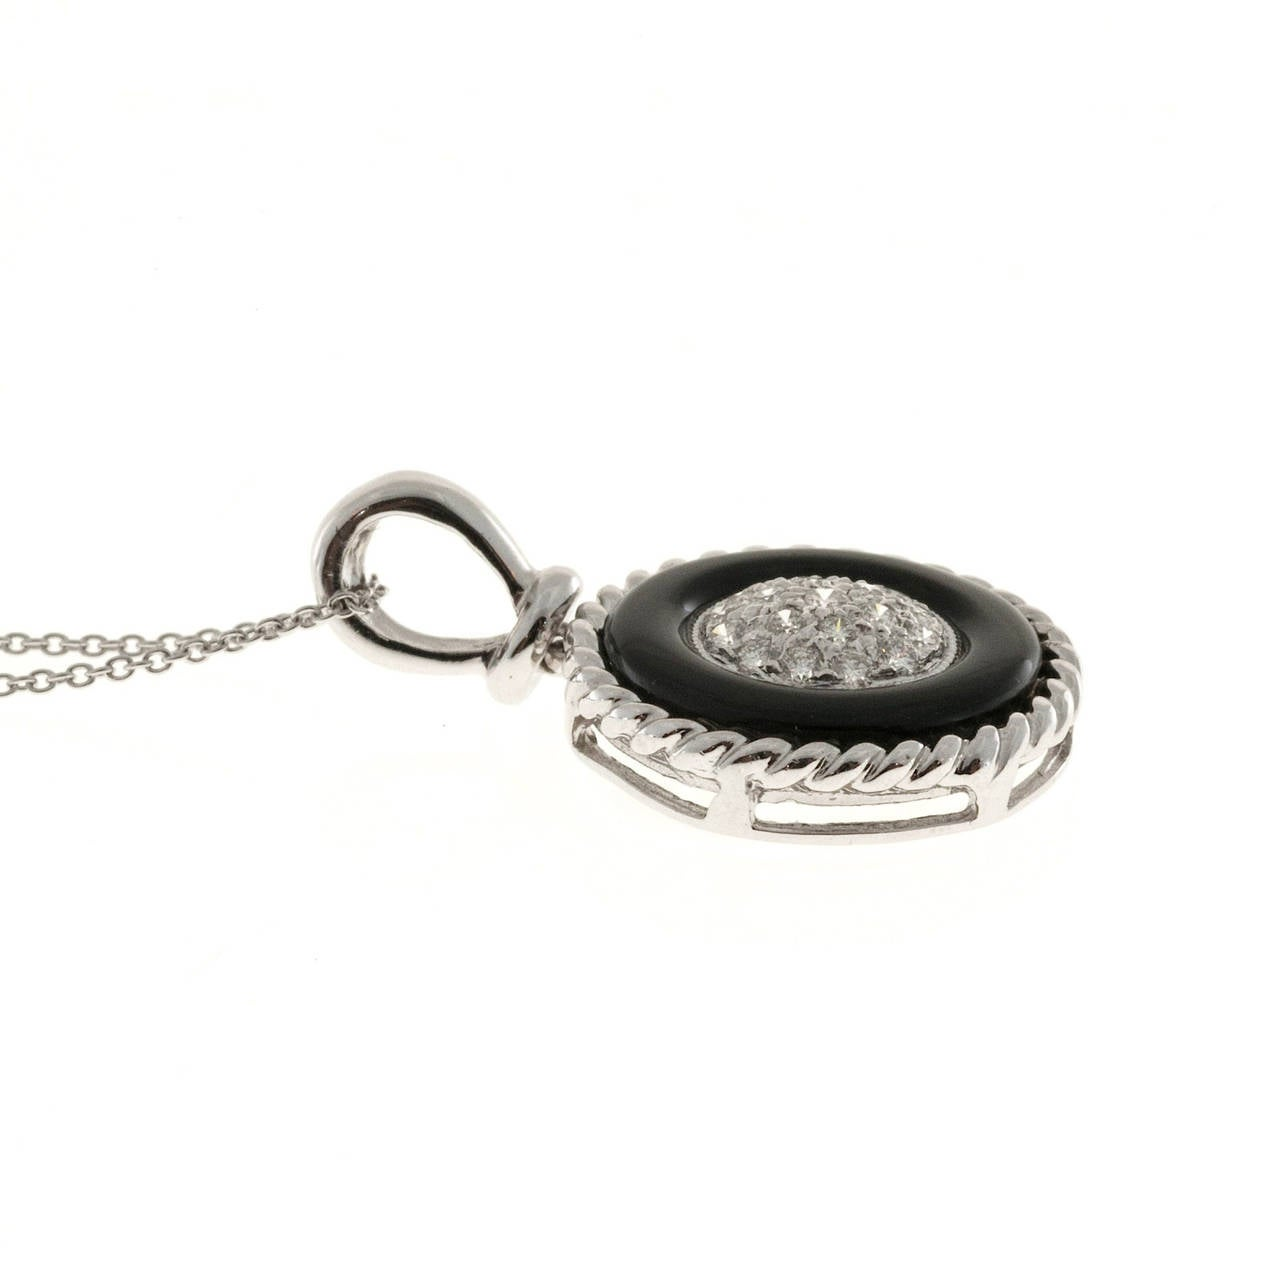 Estate solid Platinum rope border pendant with a genuine black onyx circle. The center is slightly domes and pave set with good diamonds. Chain is solid Platinum as well. Unique item in excellent condition.